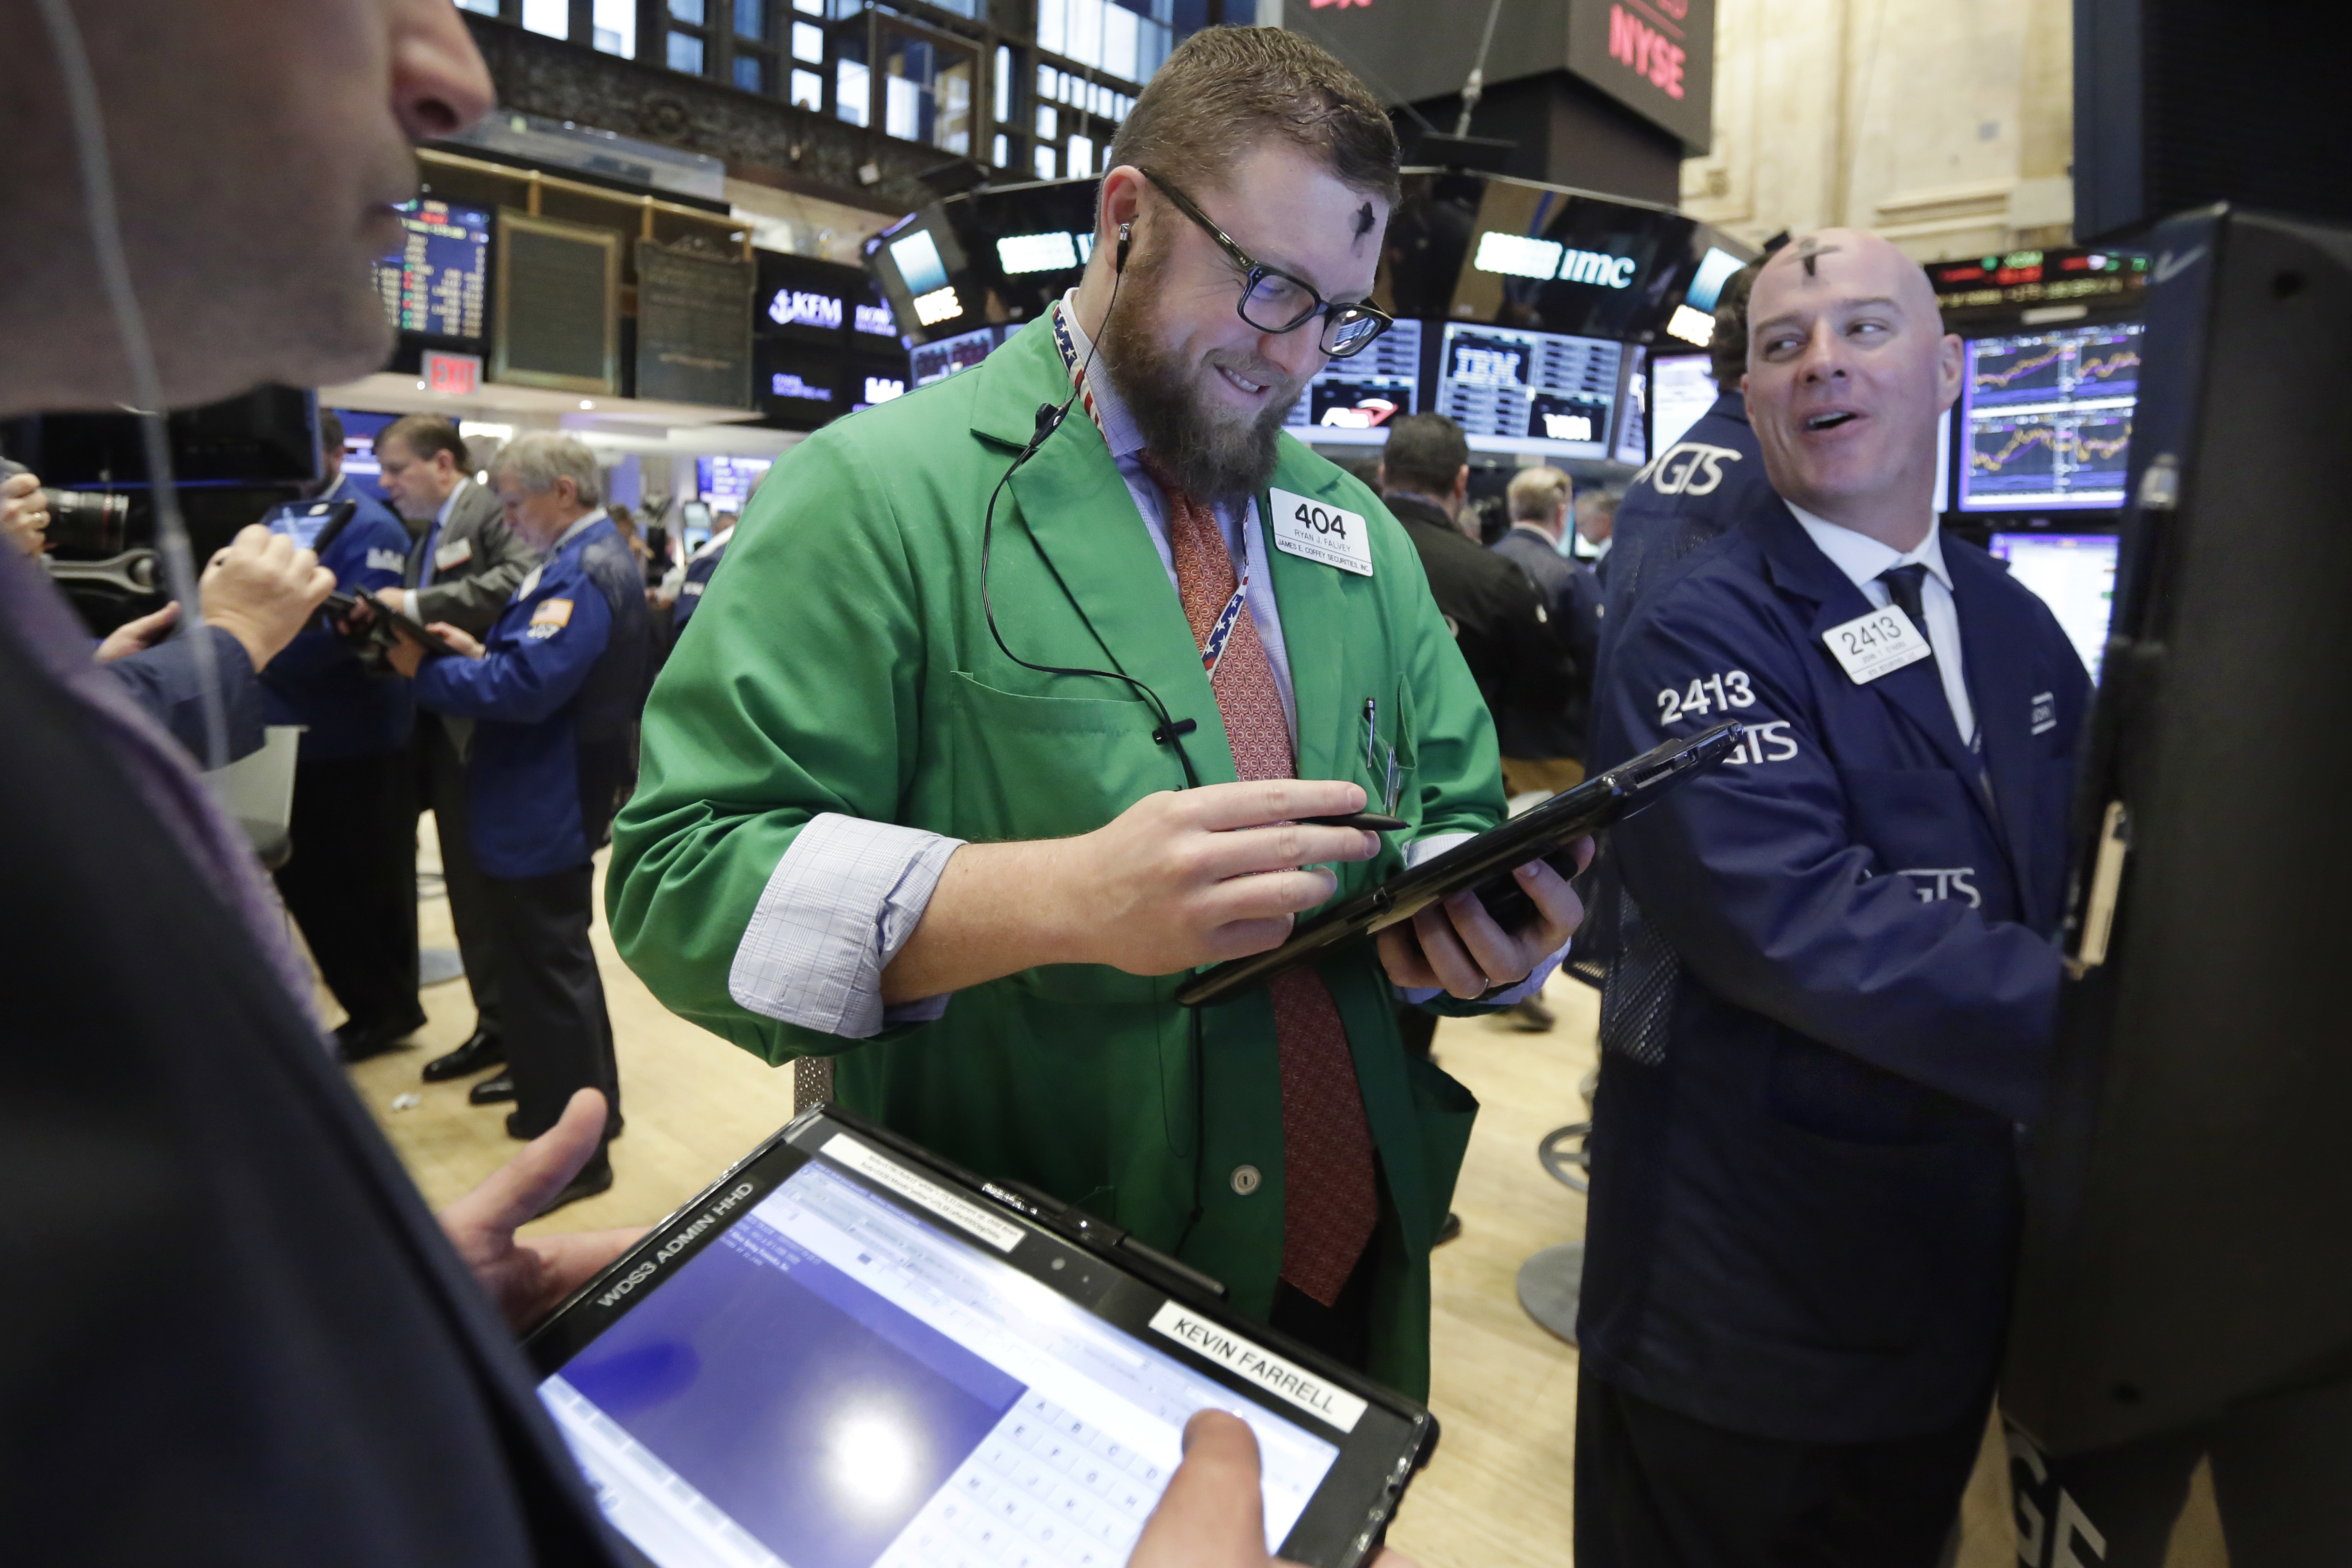 Trader Ryan Falvey, center, and specialist John O'Hara work on the floor of the New York Stock Exchange, Wednesday, March 1, 2017. Stocks opened strongly higher on Wall Street, led by big gains in banks as investors expected interest rates to rise. The early jump Wednesday put the Dow Jones industrial average above 21,000 points for the first time. (AP Photo/Richard Drew)